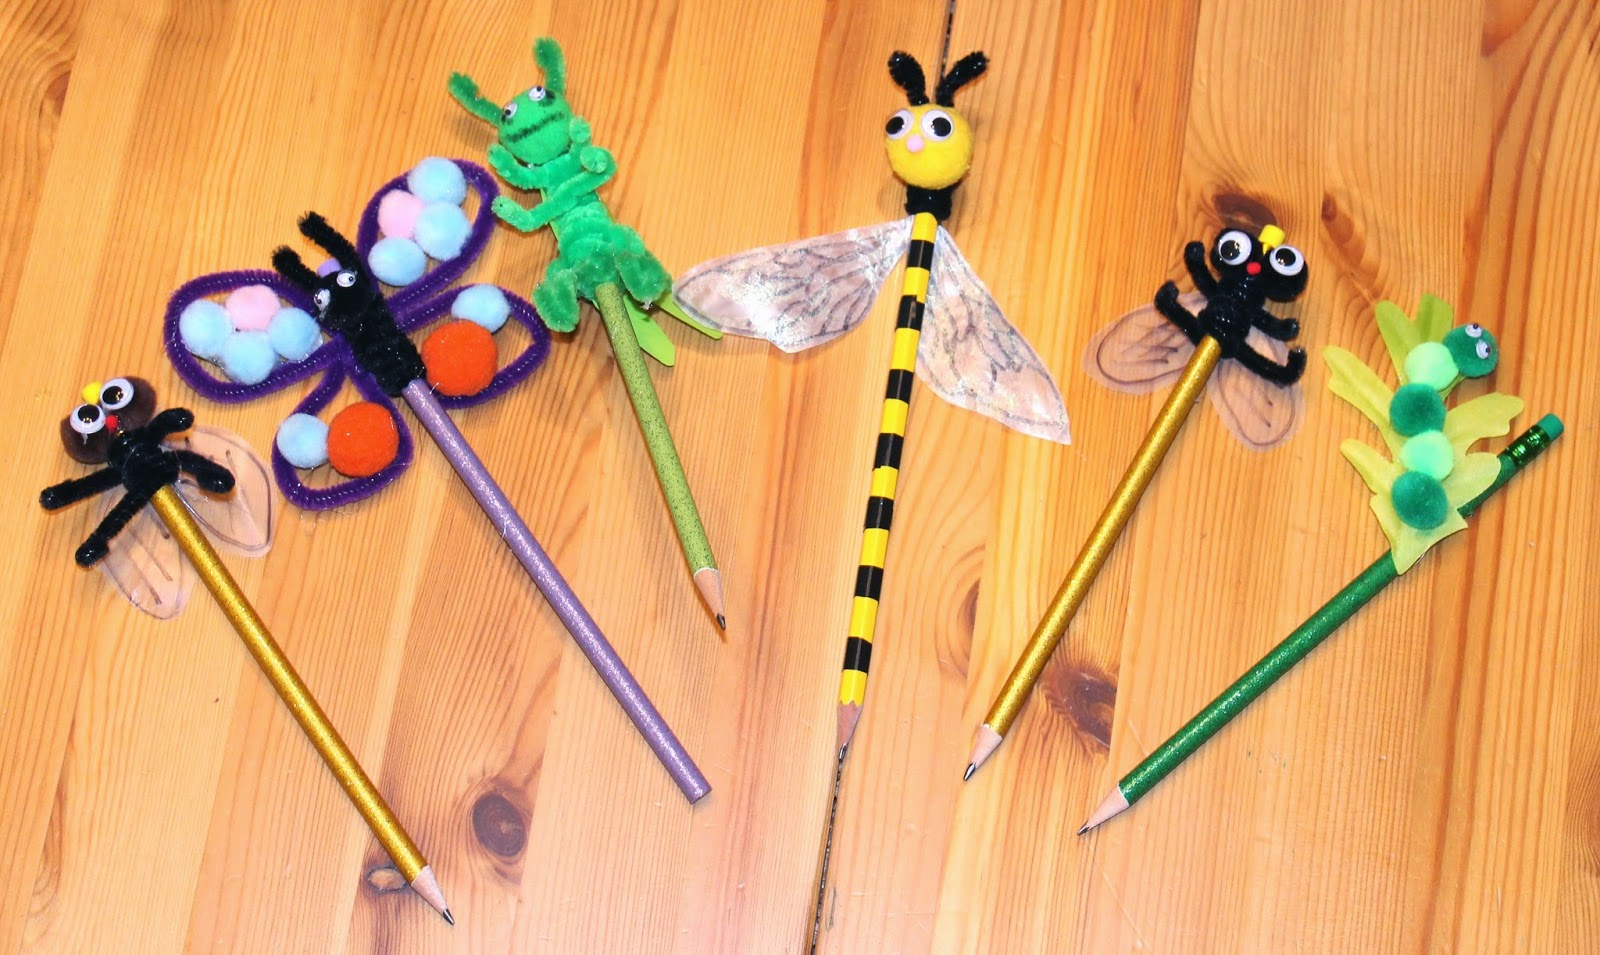 Art Craft Ideas Pencil Craft Ideas For Kids Art Craft Gift Ideas